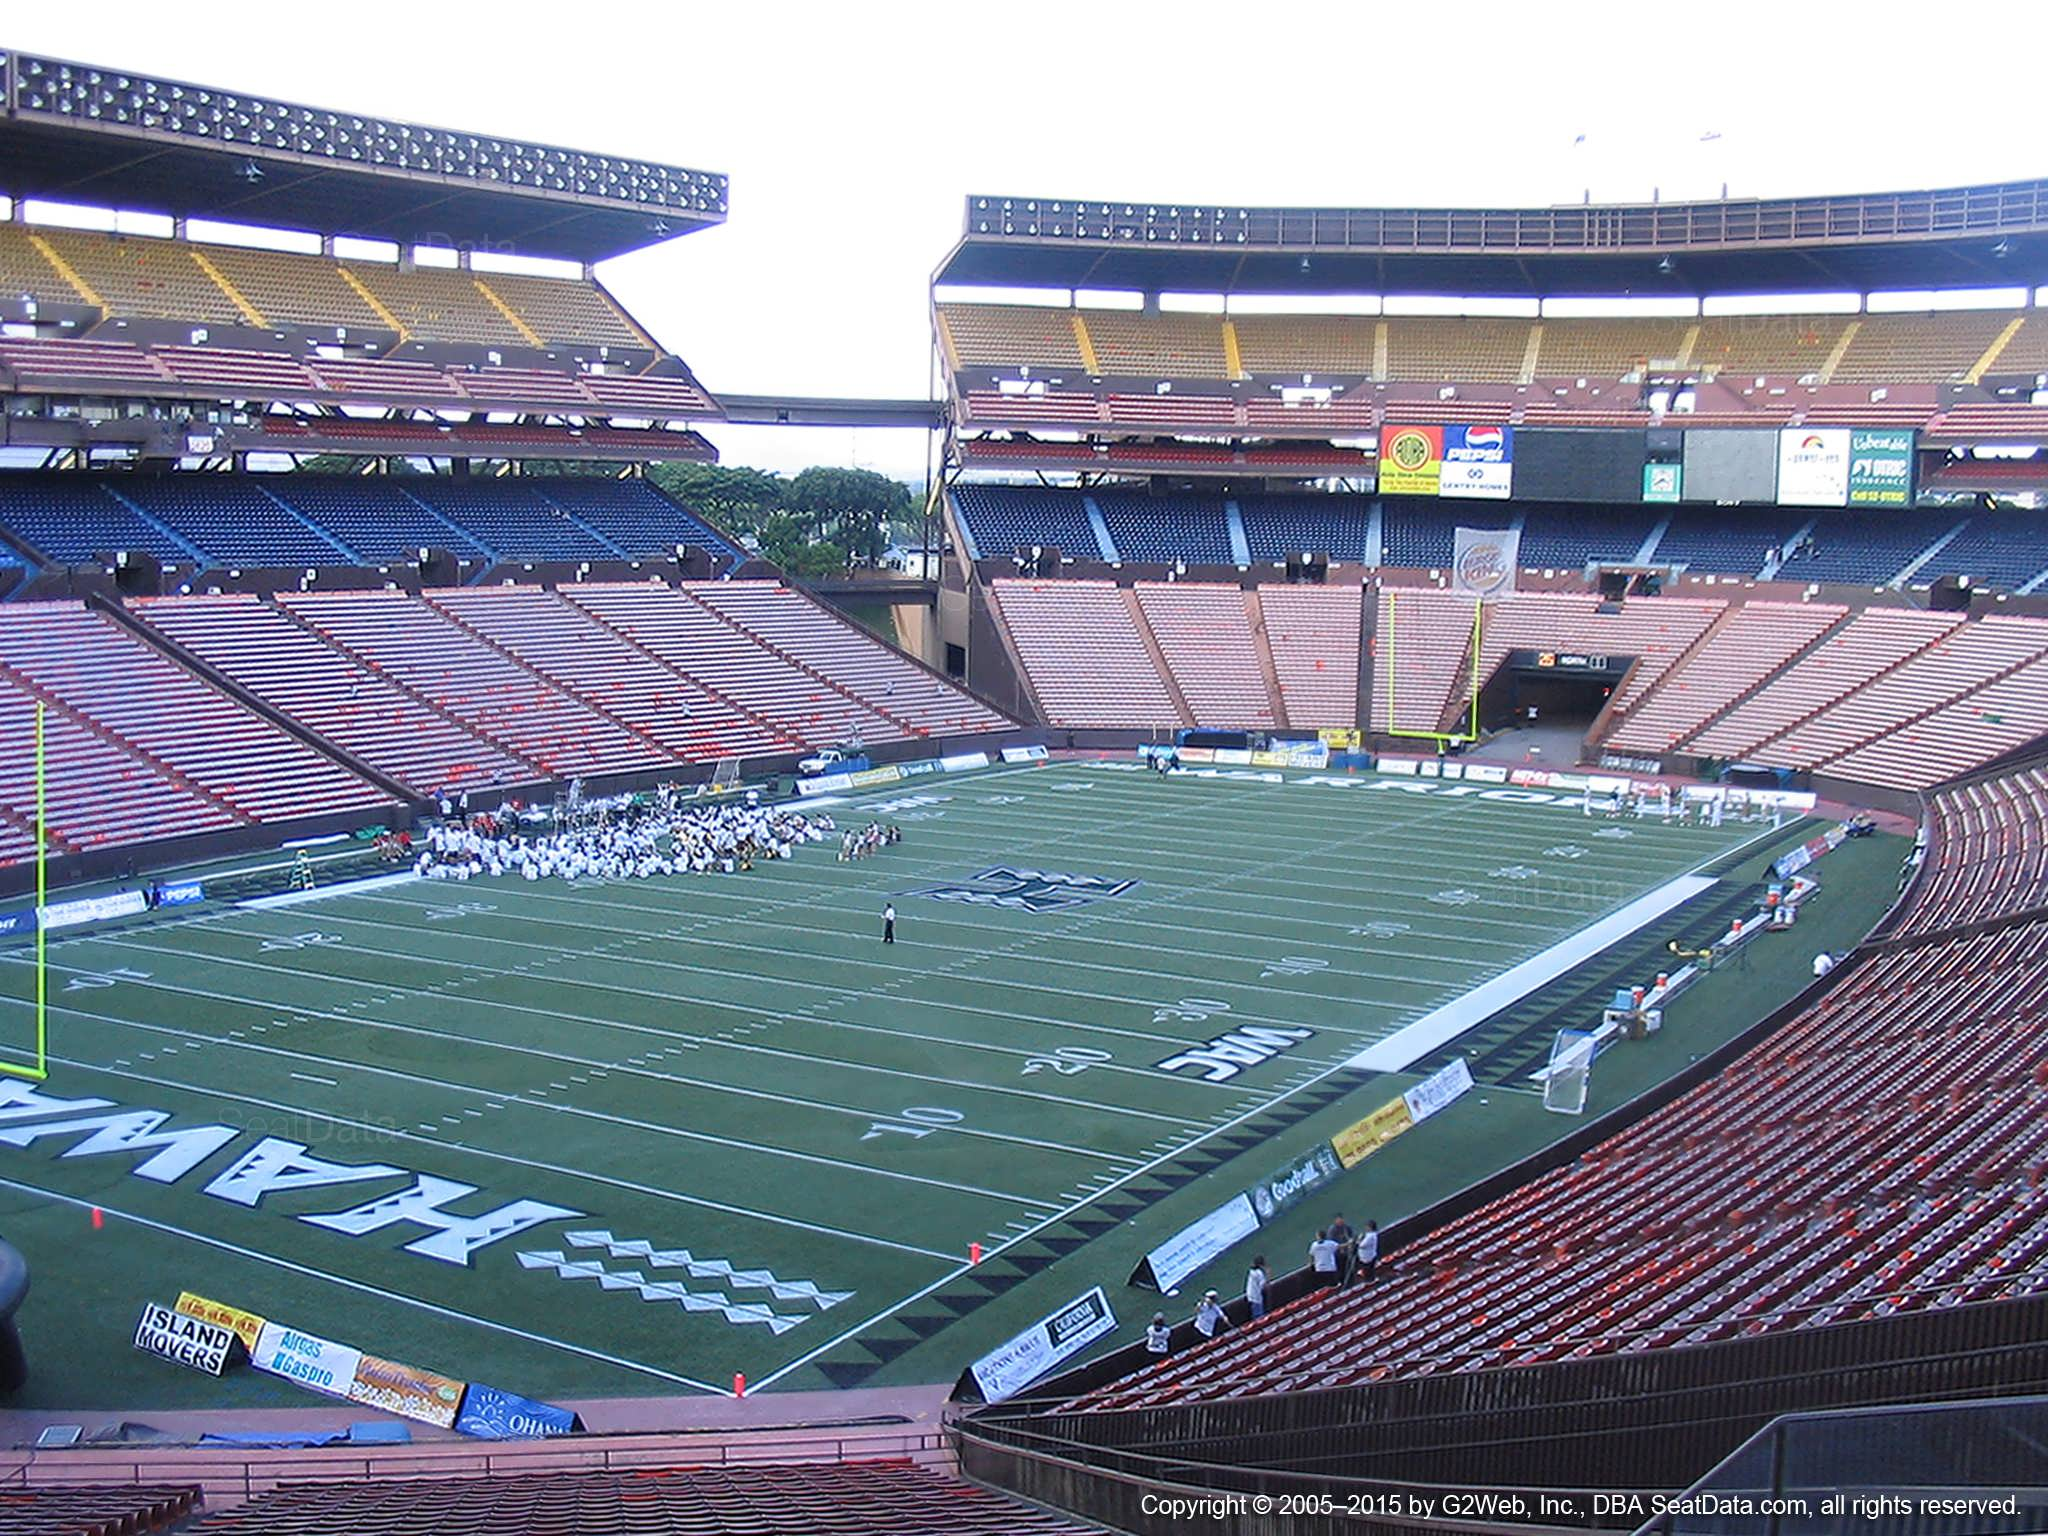 Seat View for Aloha Stadium Blue EE